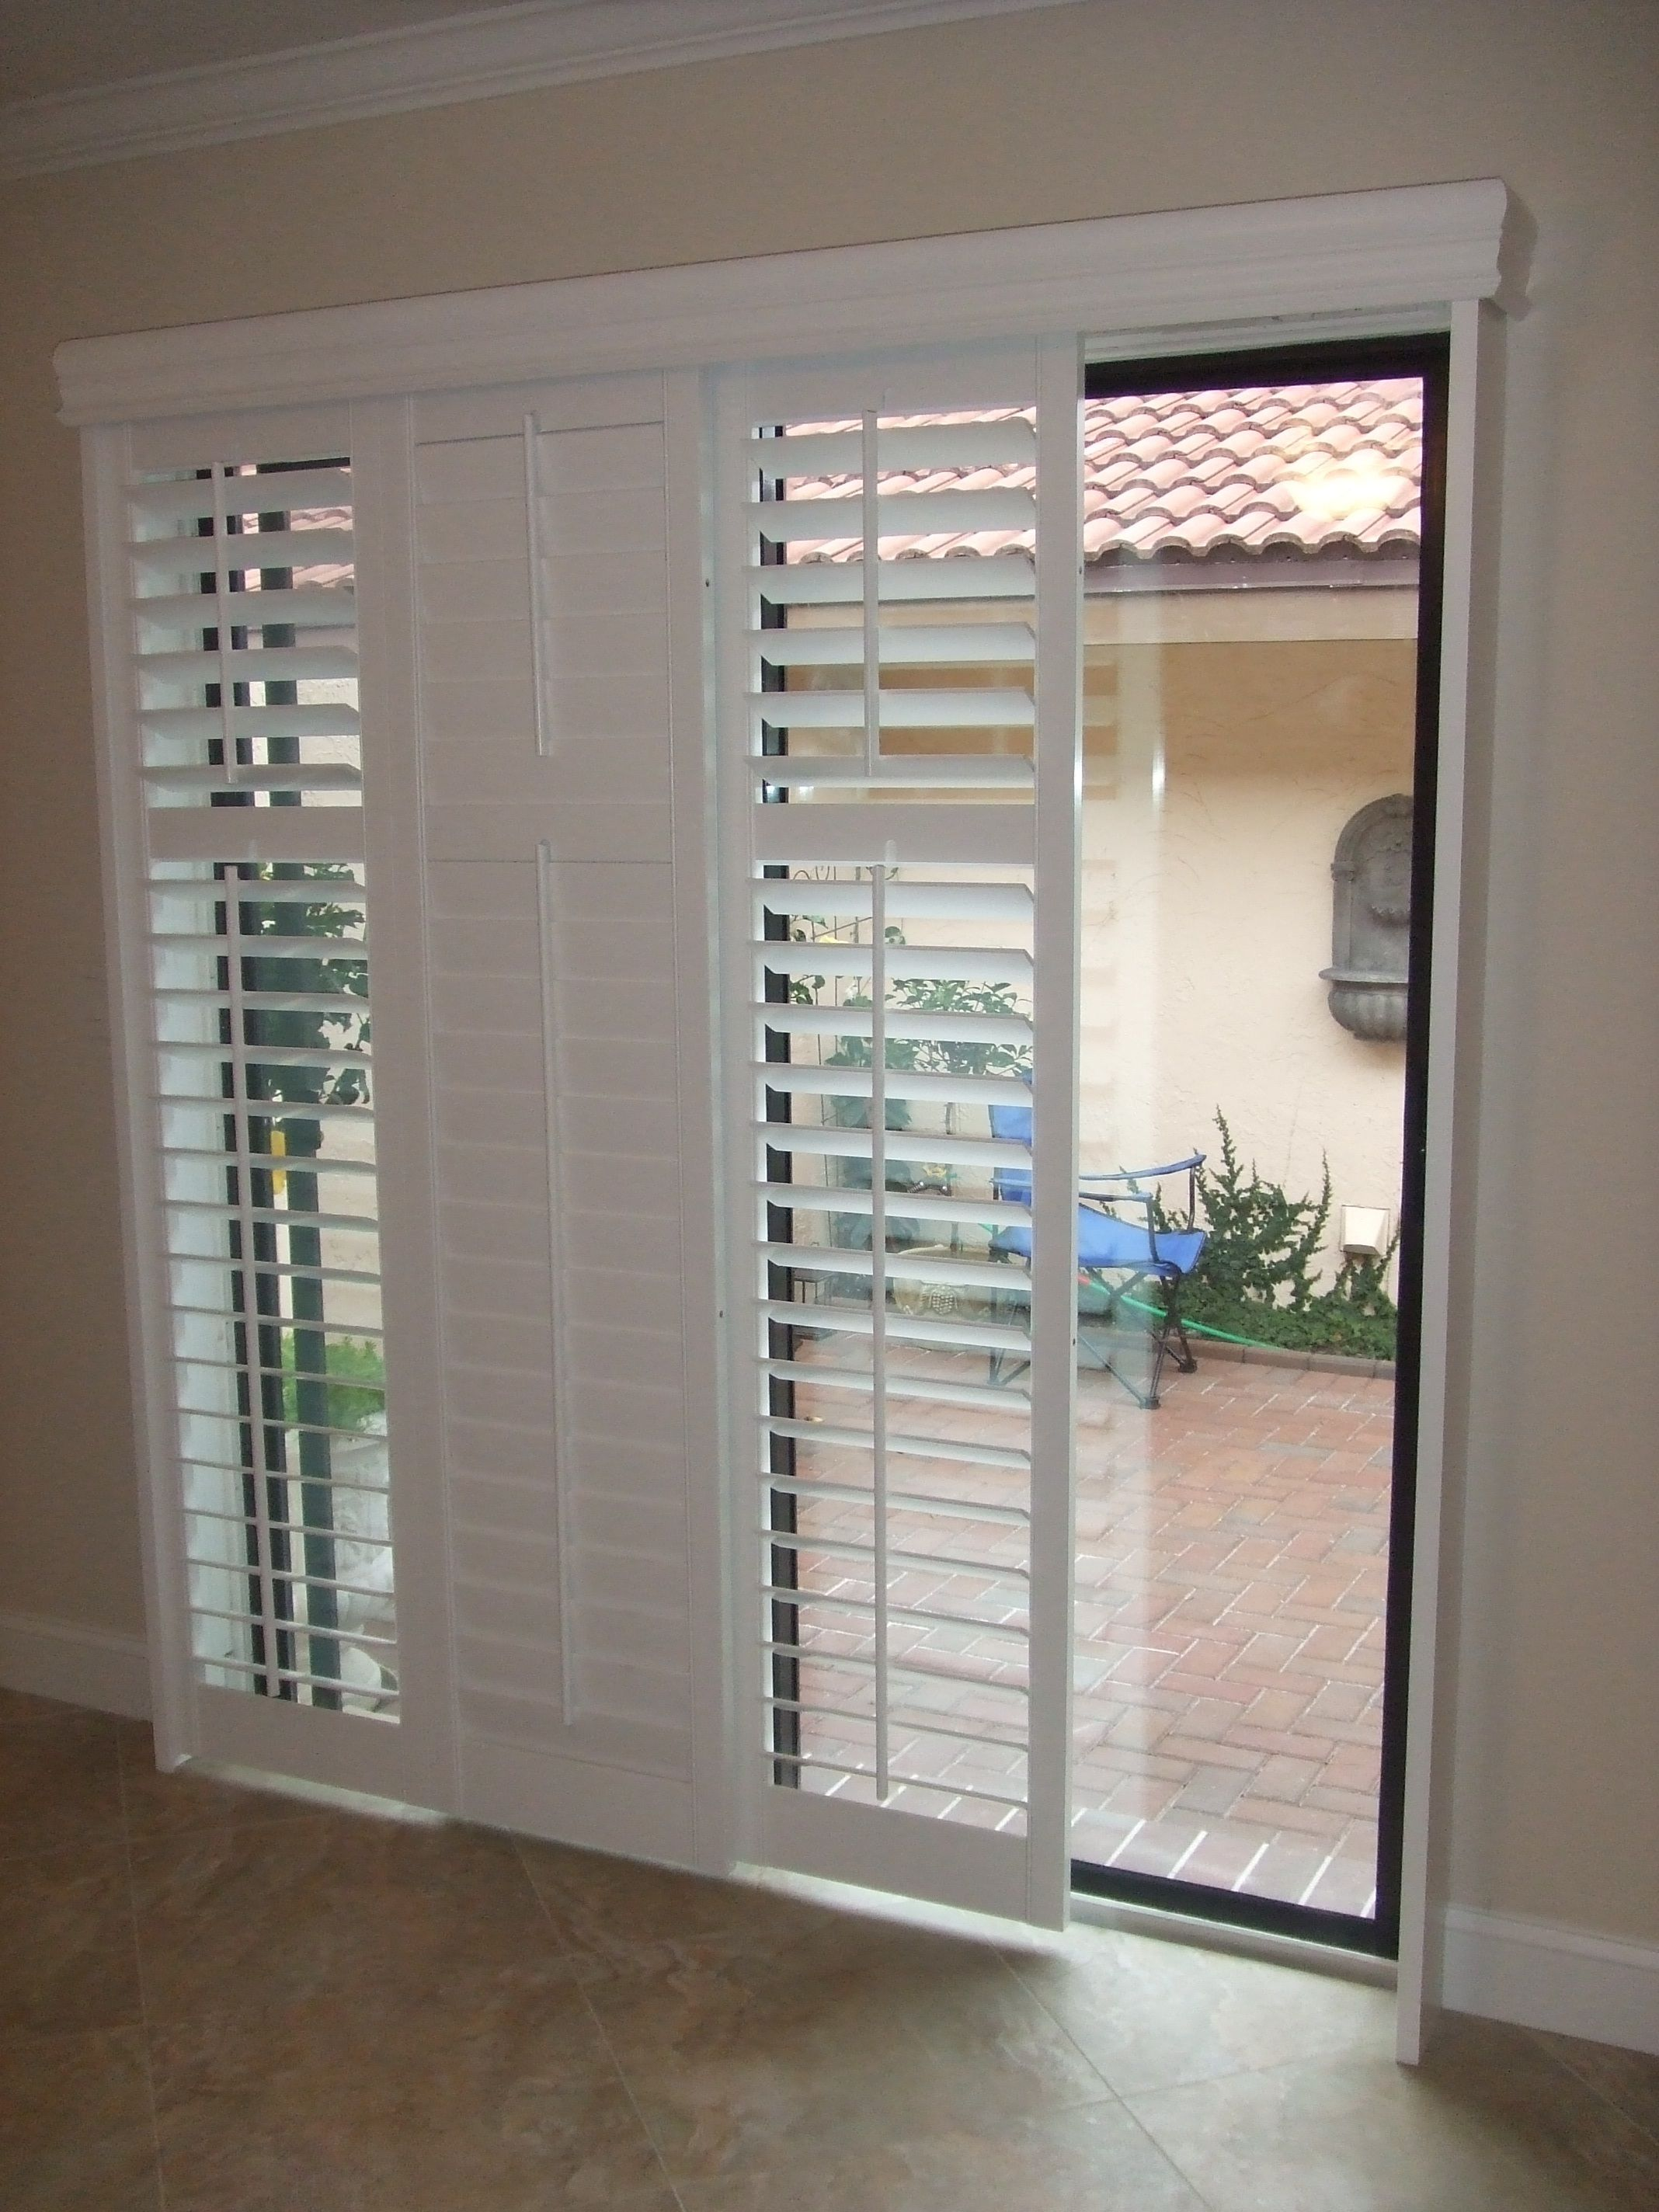 Rockwood Shutters Shutters Blinds And Shades Glass Doors Patio Sliding Glass Doors Patio Door Coverings